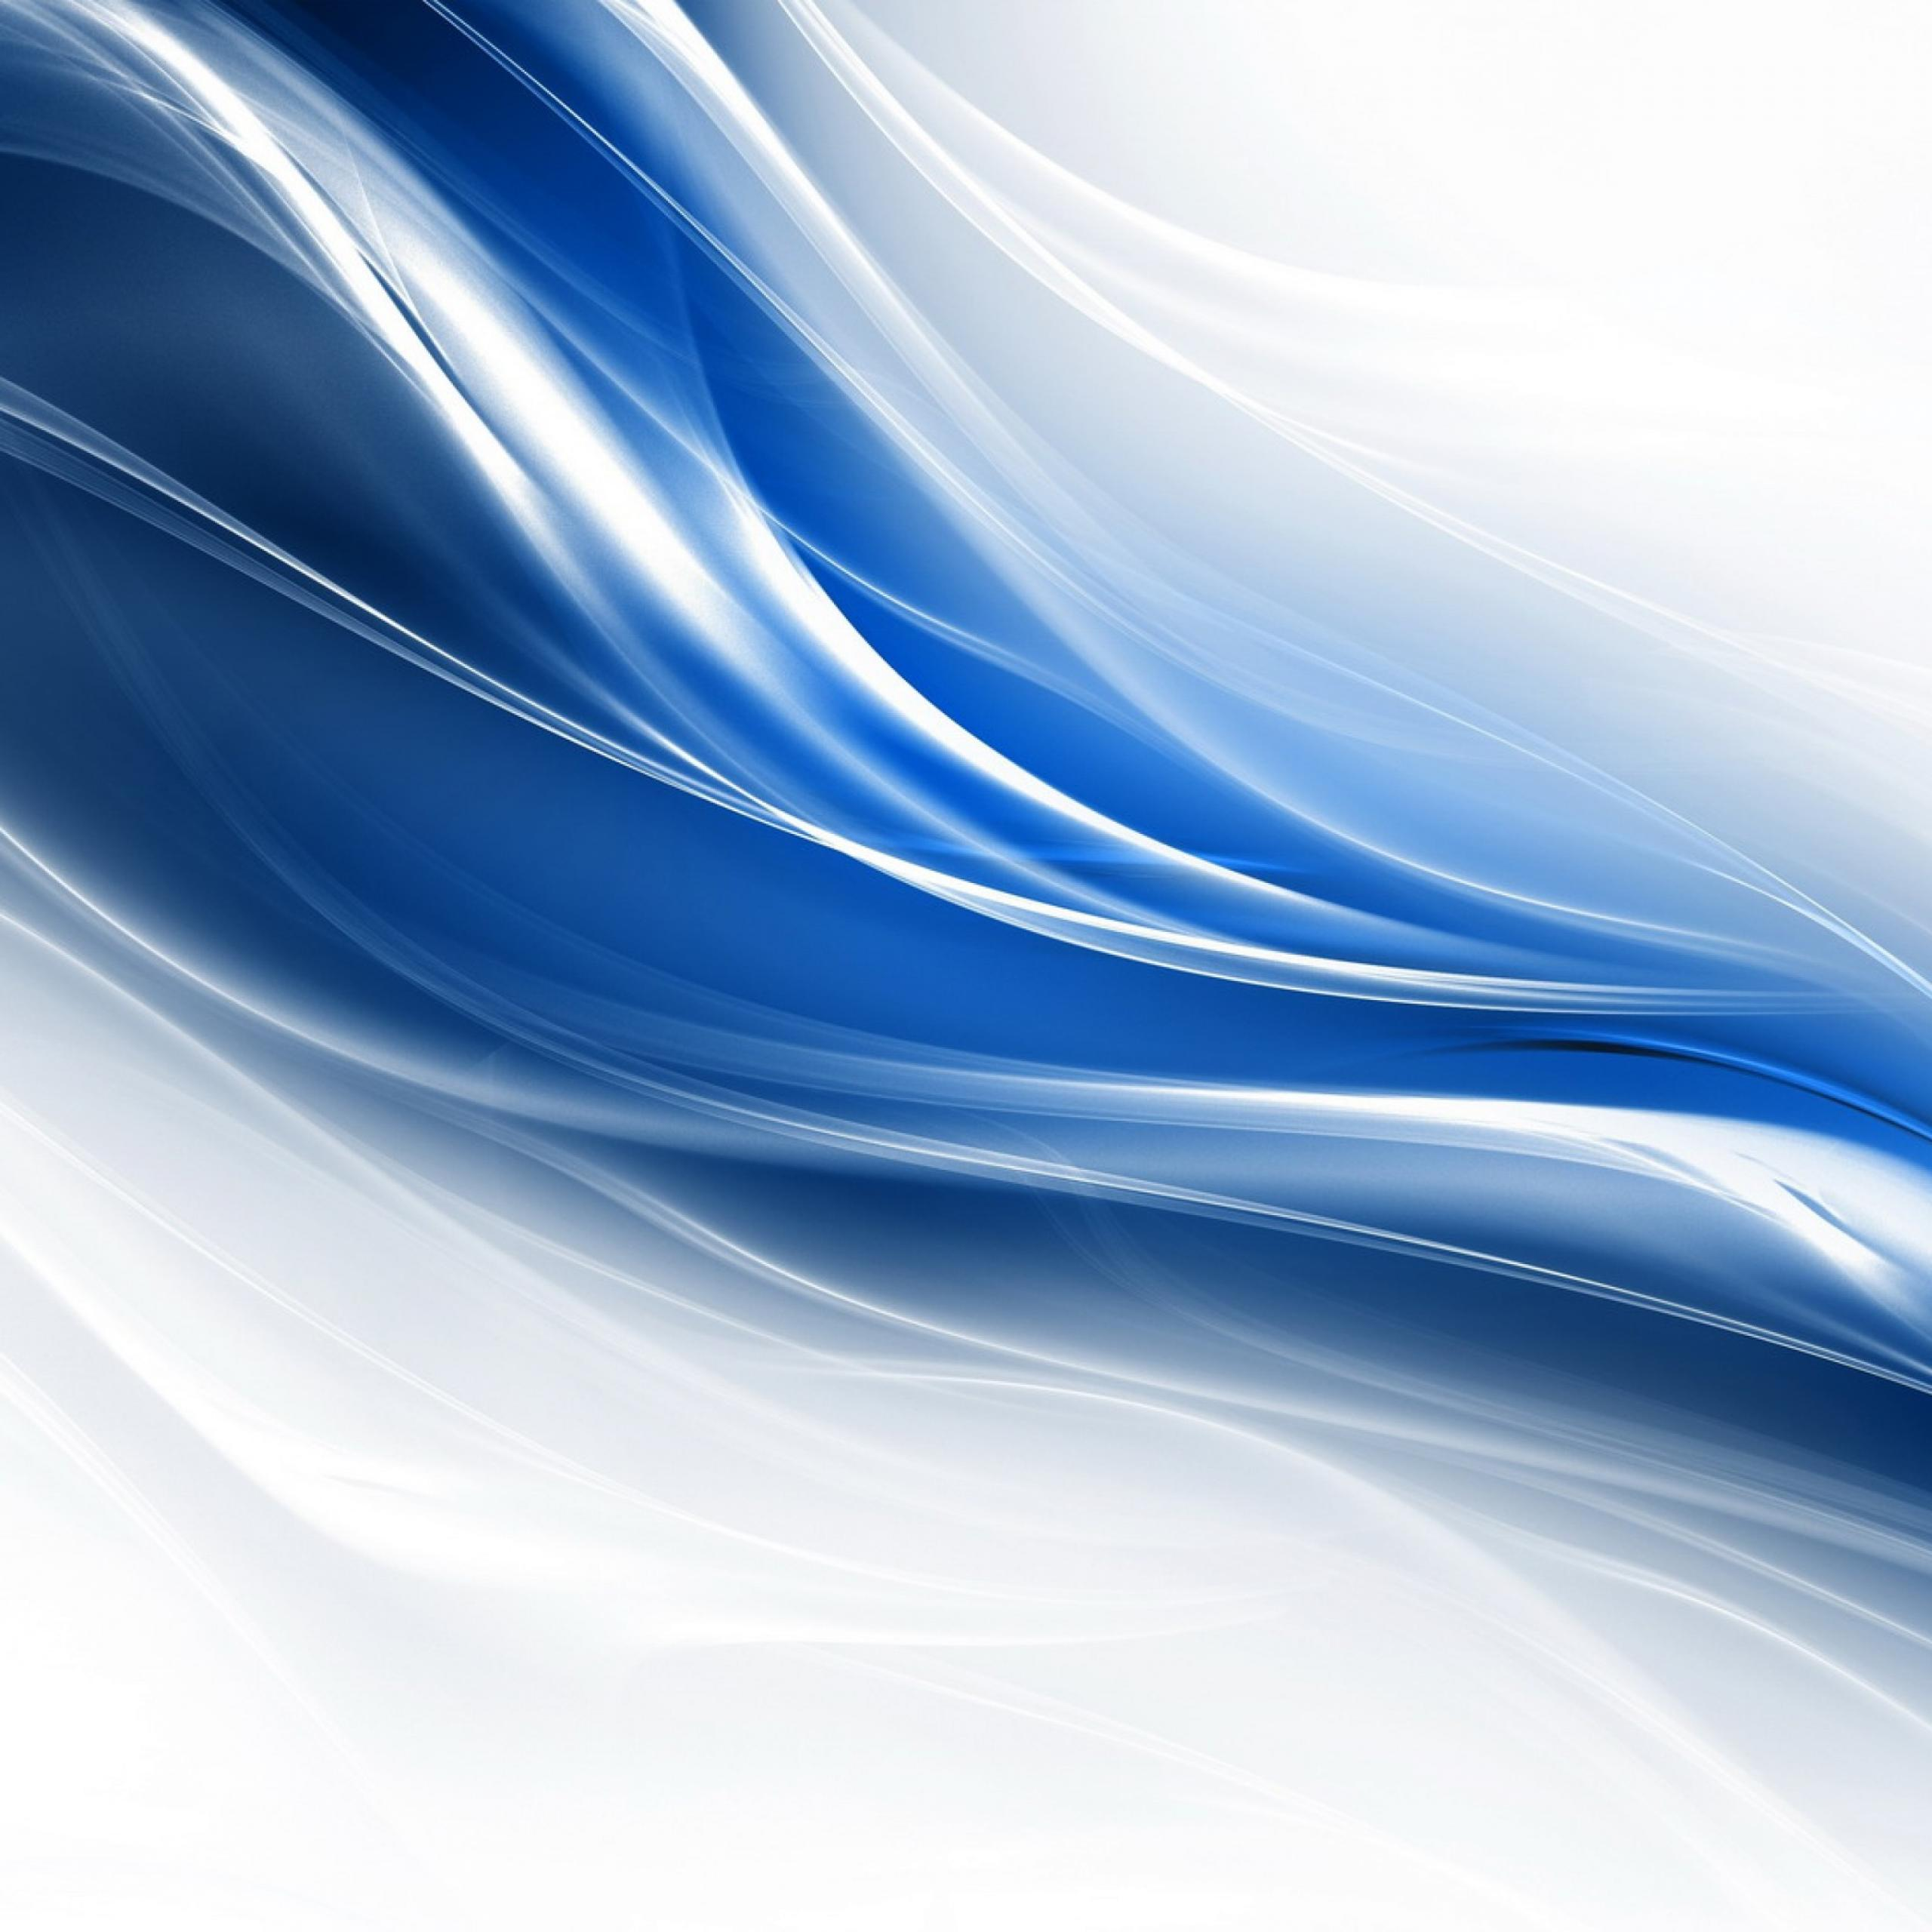 Simple Blue Abstract Wallpaper